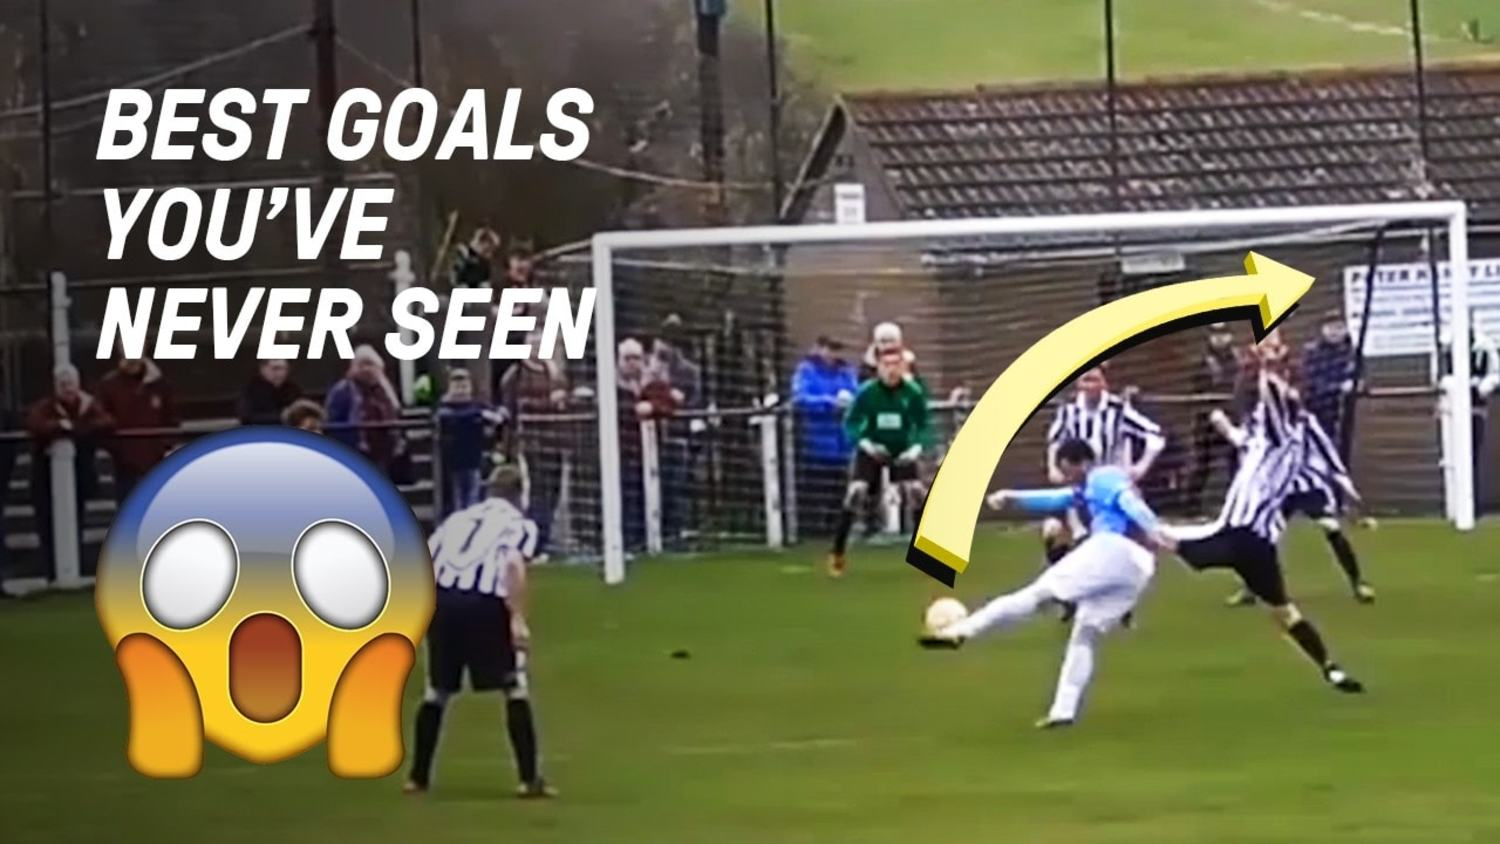 The Best Goals You've Never Seen - Everyday Football Magic